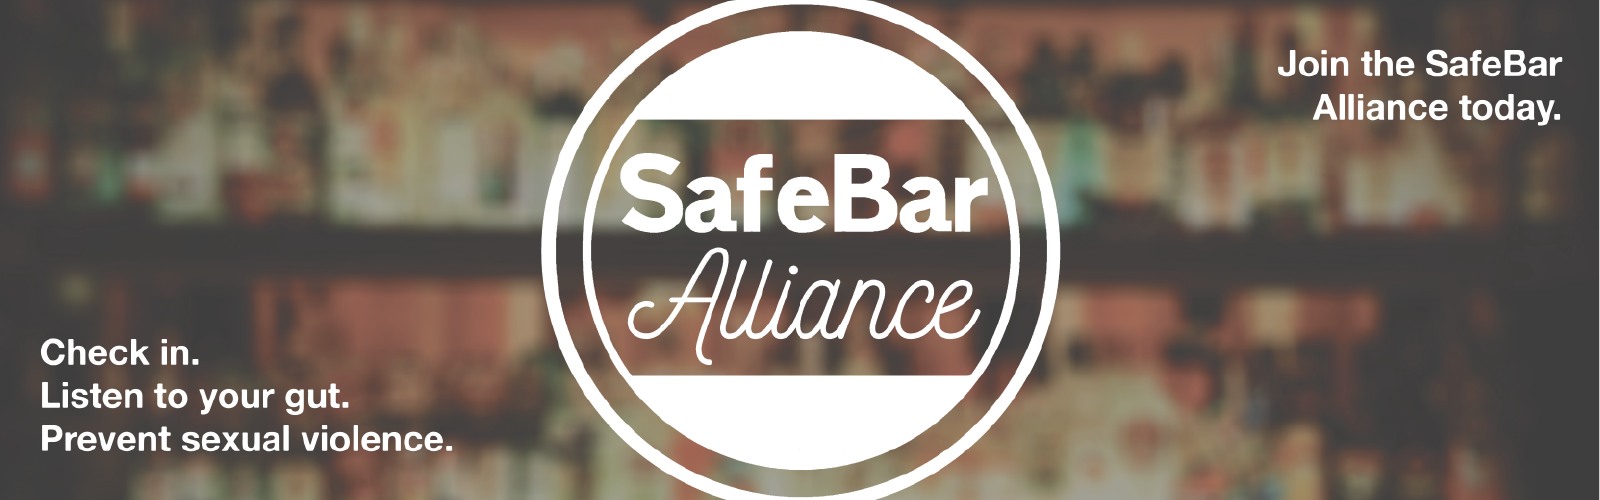 SafeBar Alliance